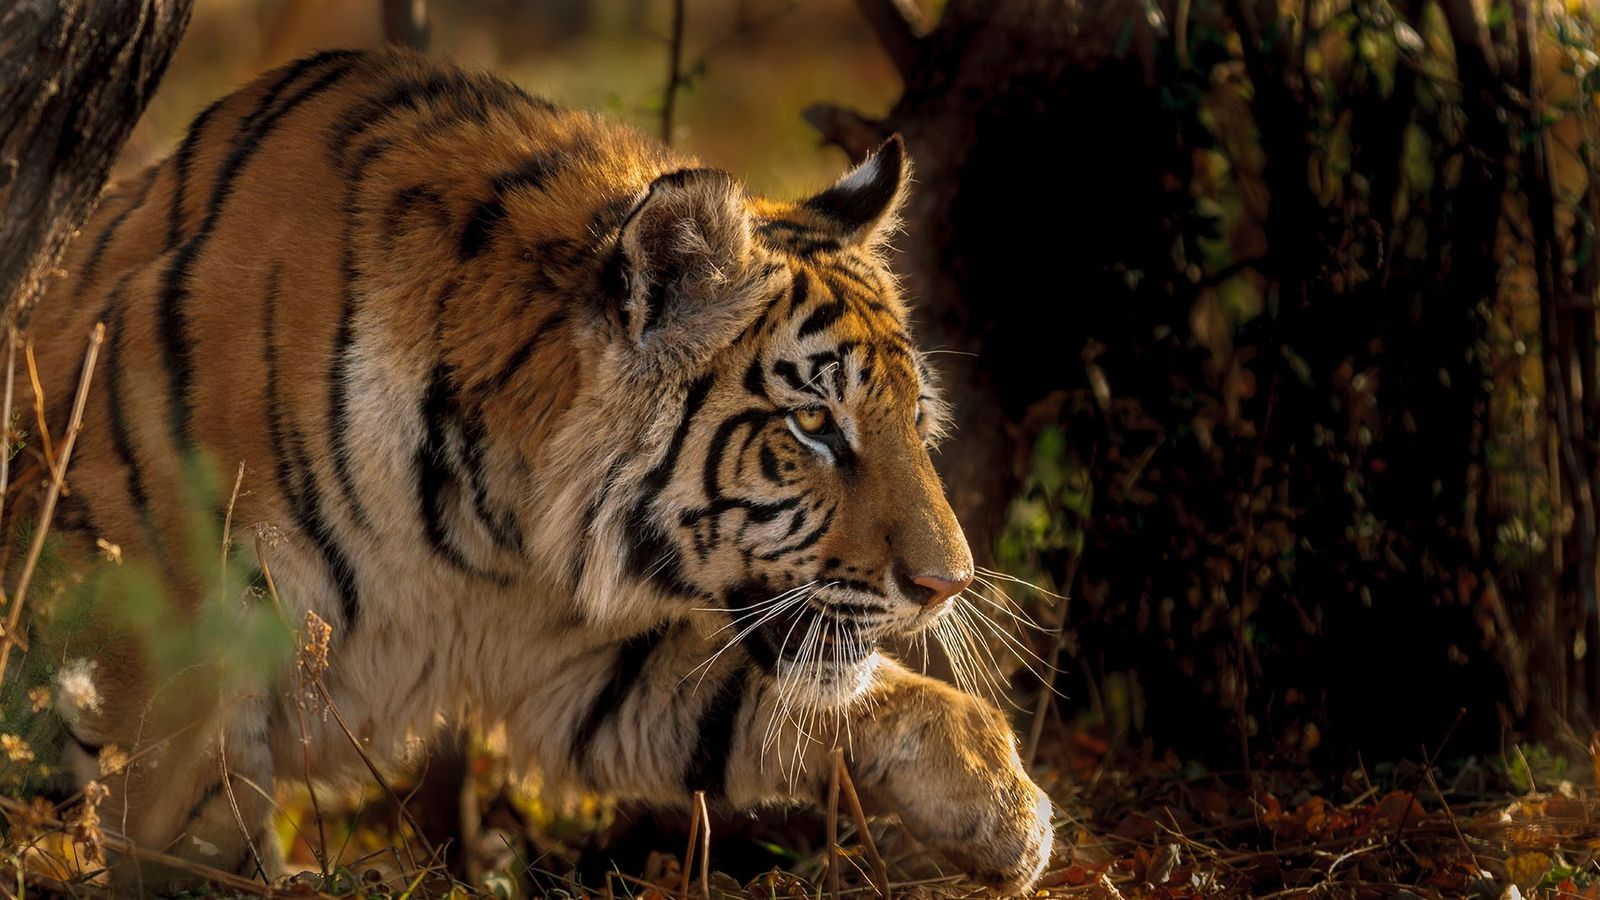 A fully-grown male Bengal tiger can reach 12ft from nose to tail.